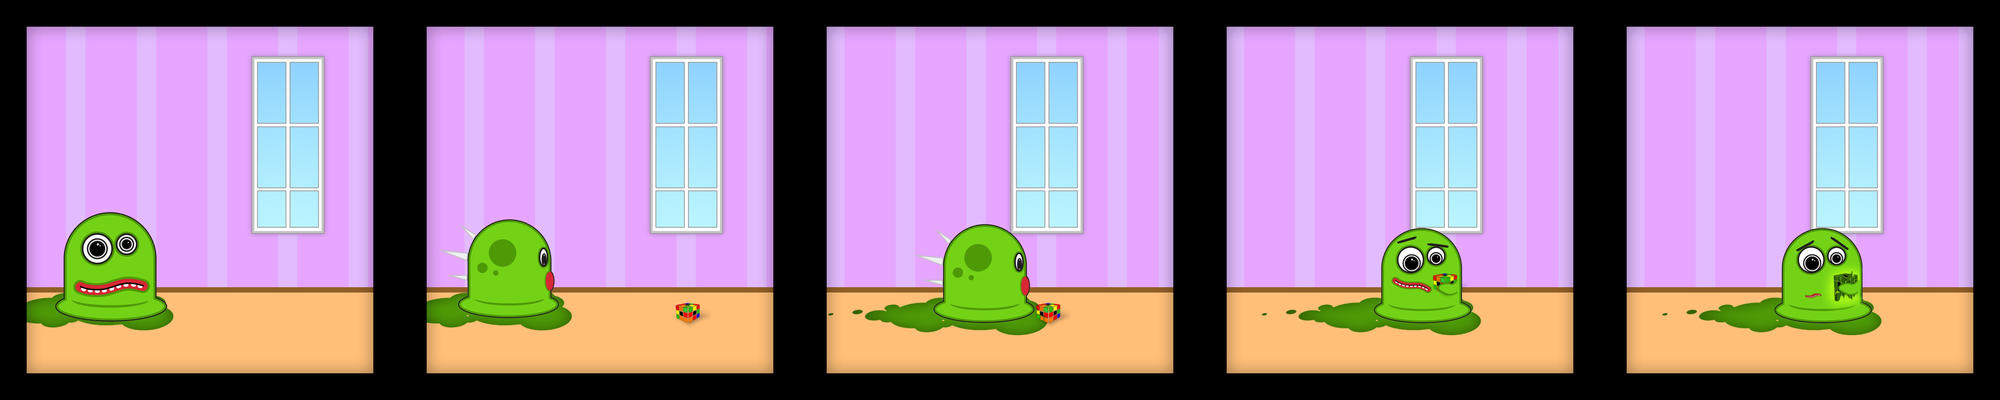 Hermie the Radioactive Slime by Emn1ty